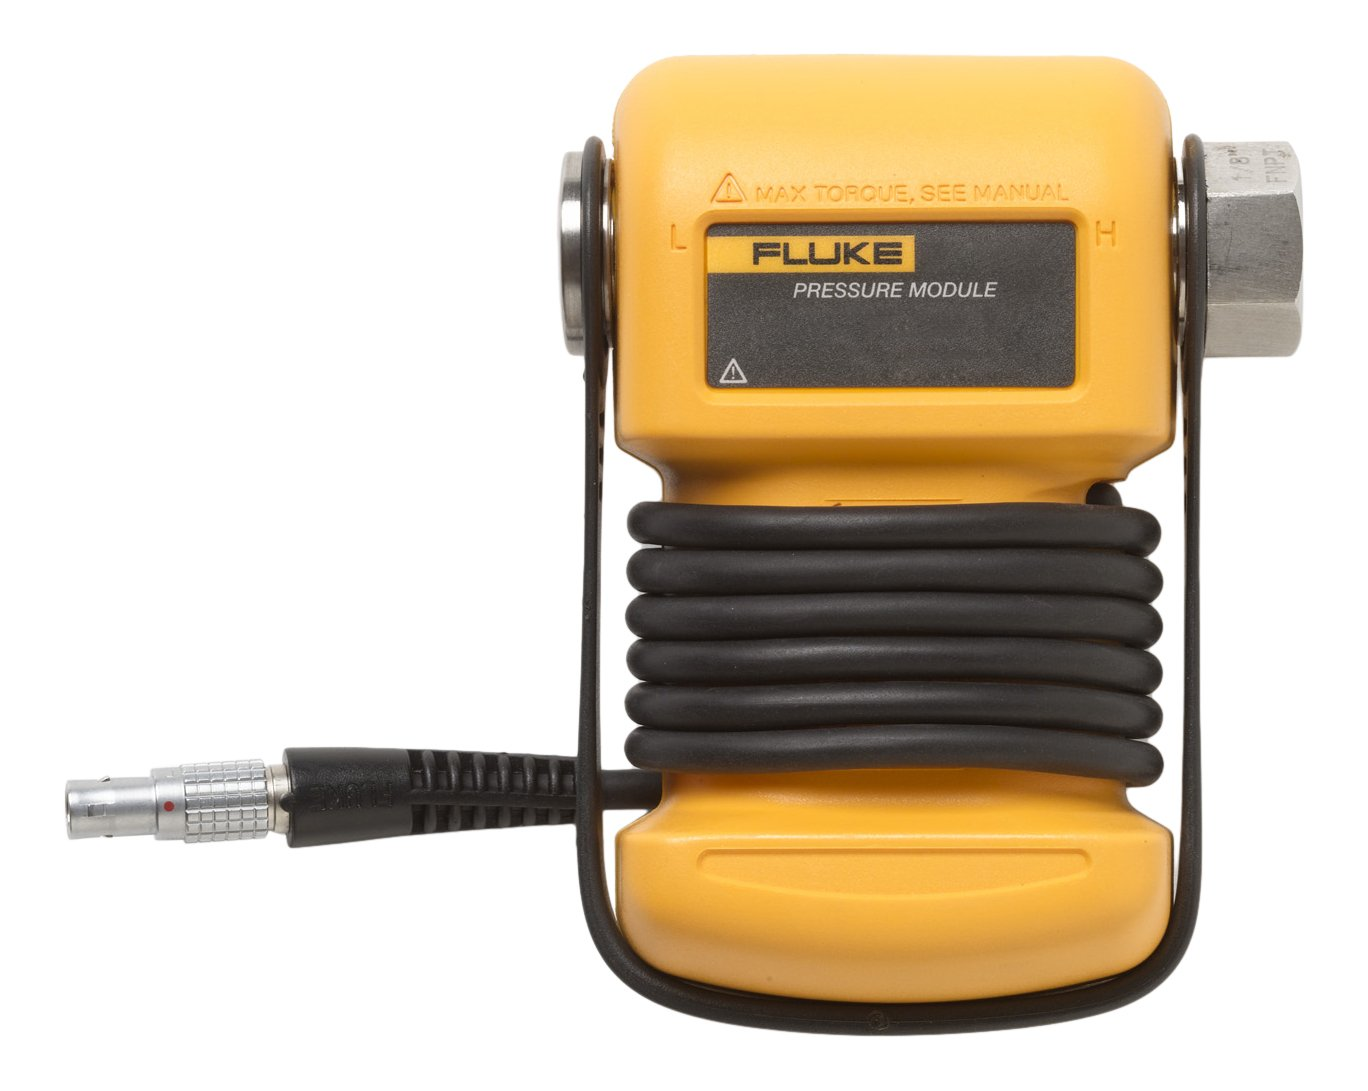 FLUKE-750R31 Pressure Module, 0 to 10000 psi, reference accuracy